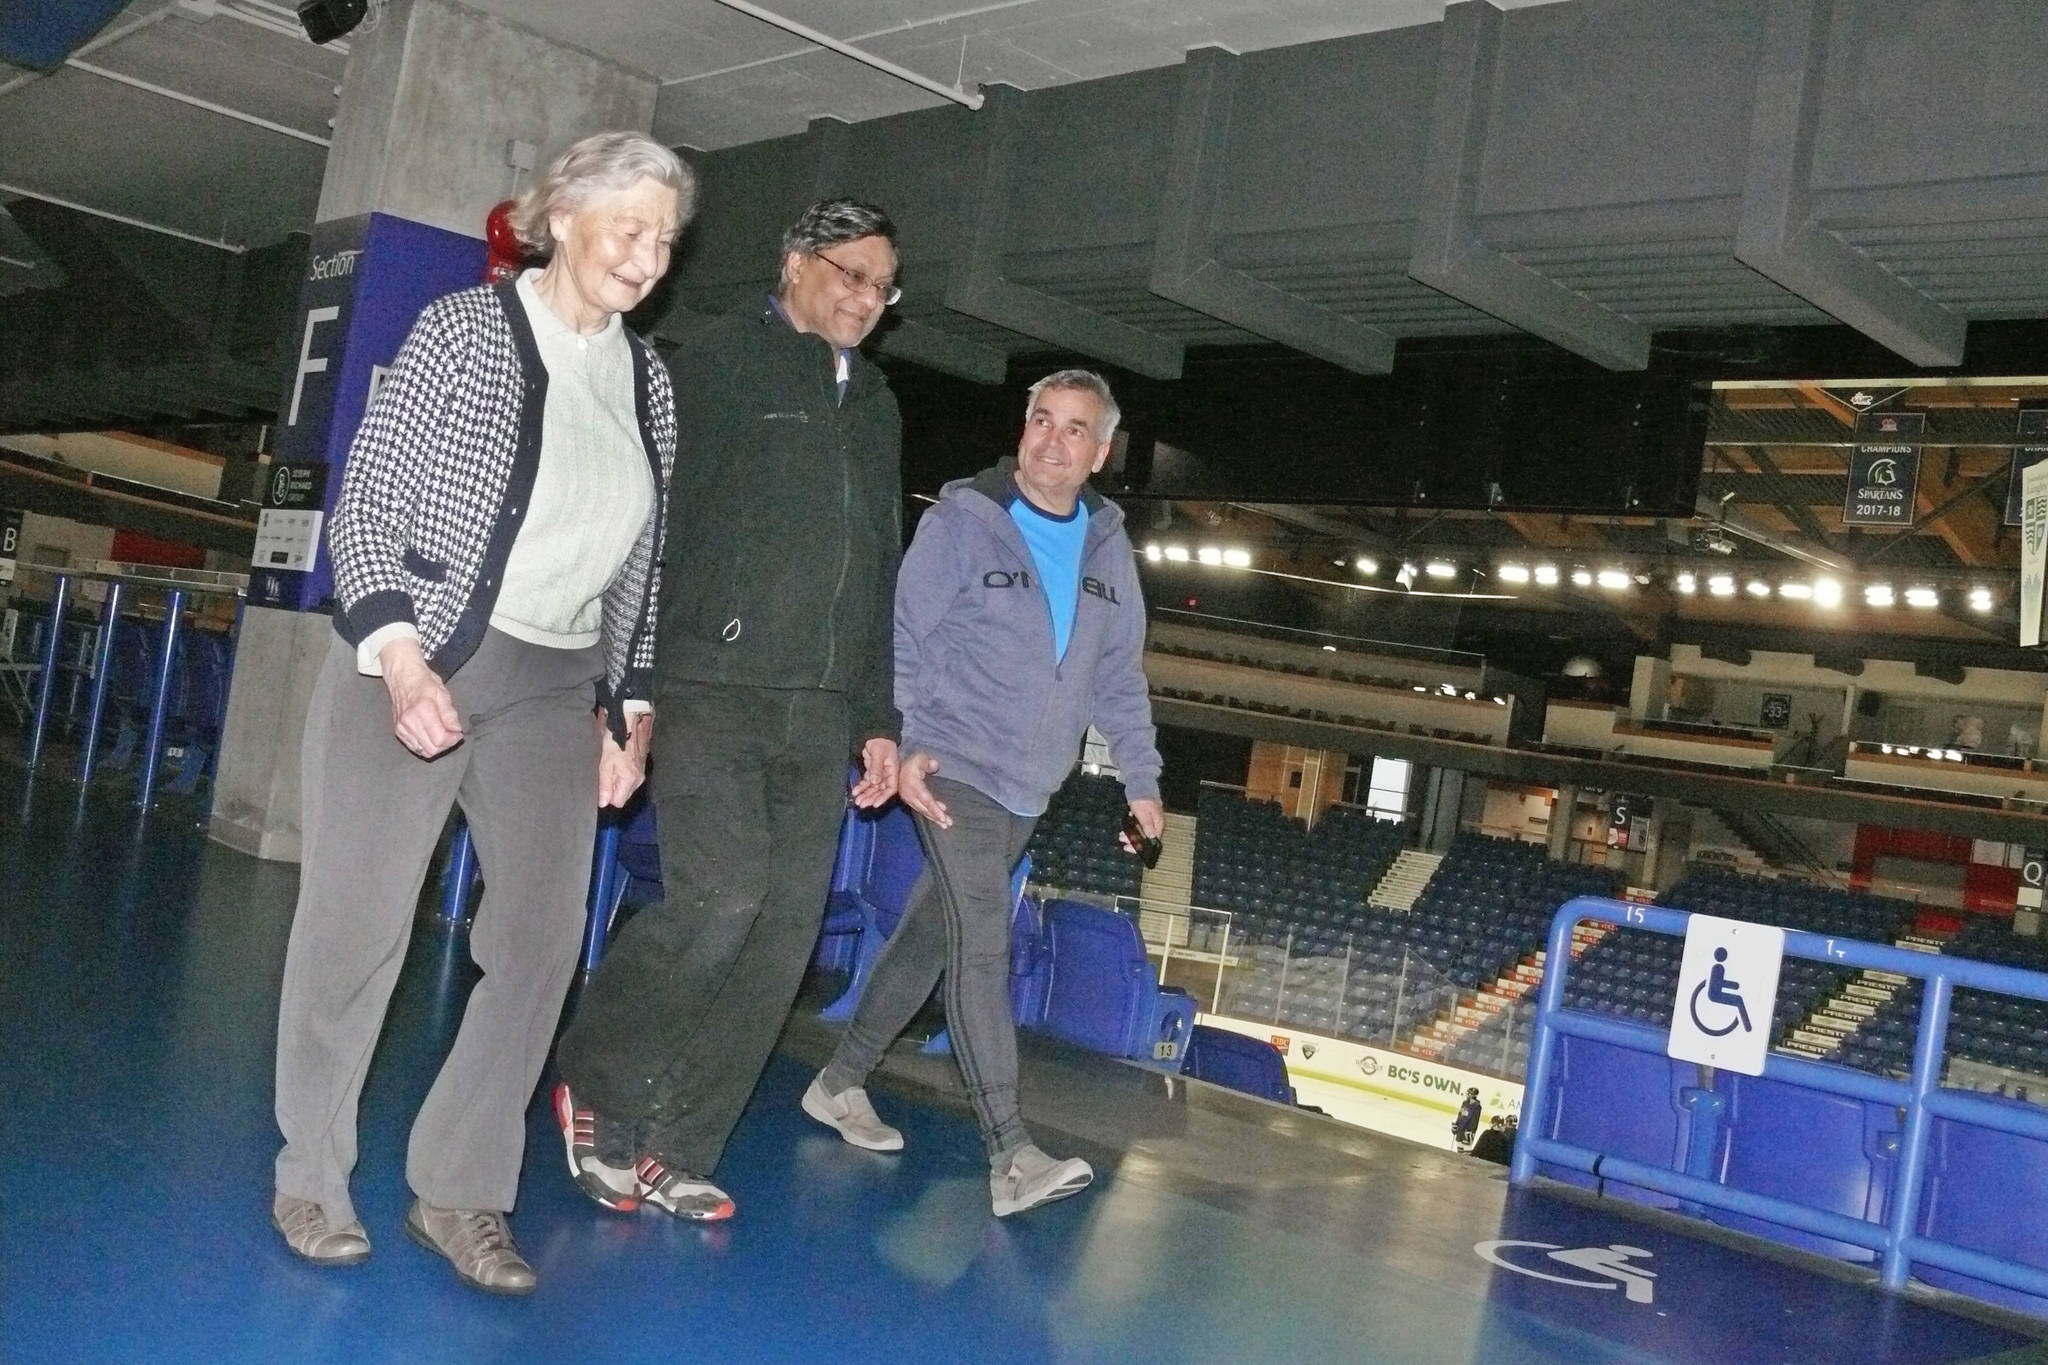 Ingeborg Horst (left) chats with fellow walkers at Langley Events Centre. Raymond Kleiner is on the right. (Dan Ferguson/Langley Advance Times)